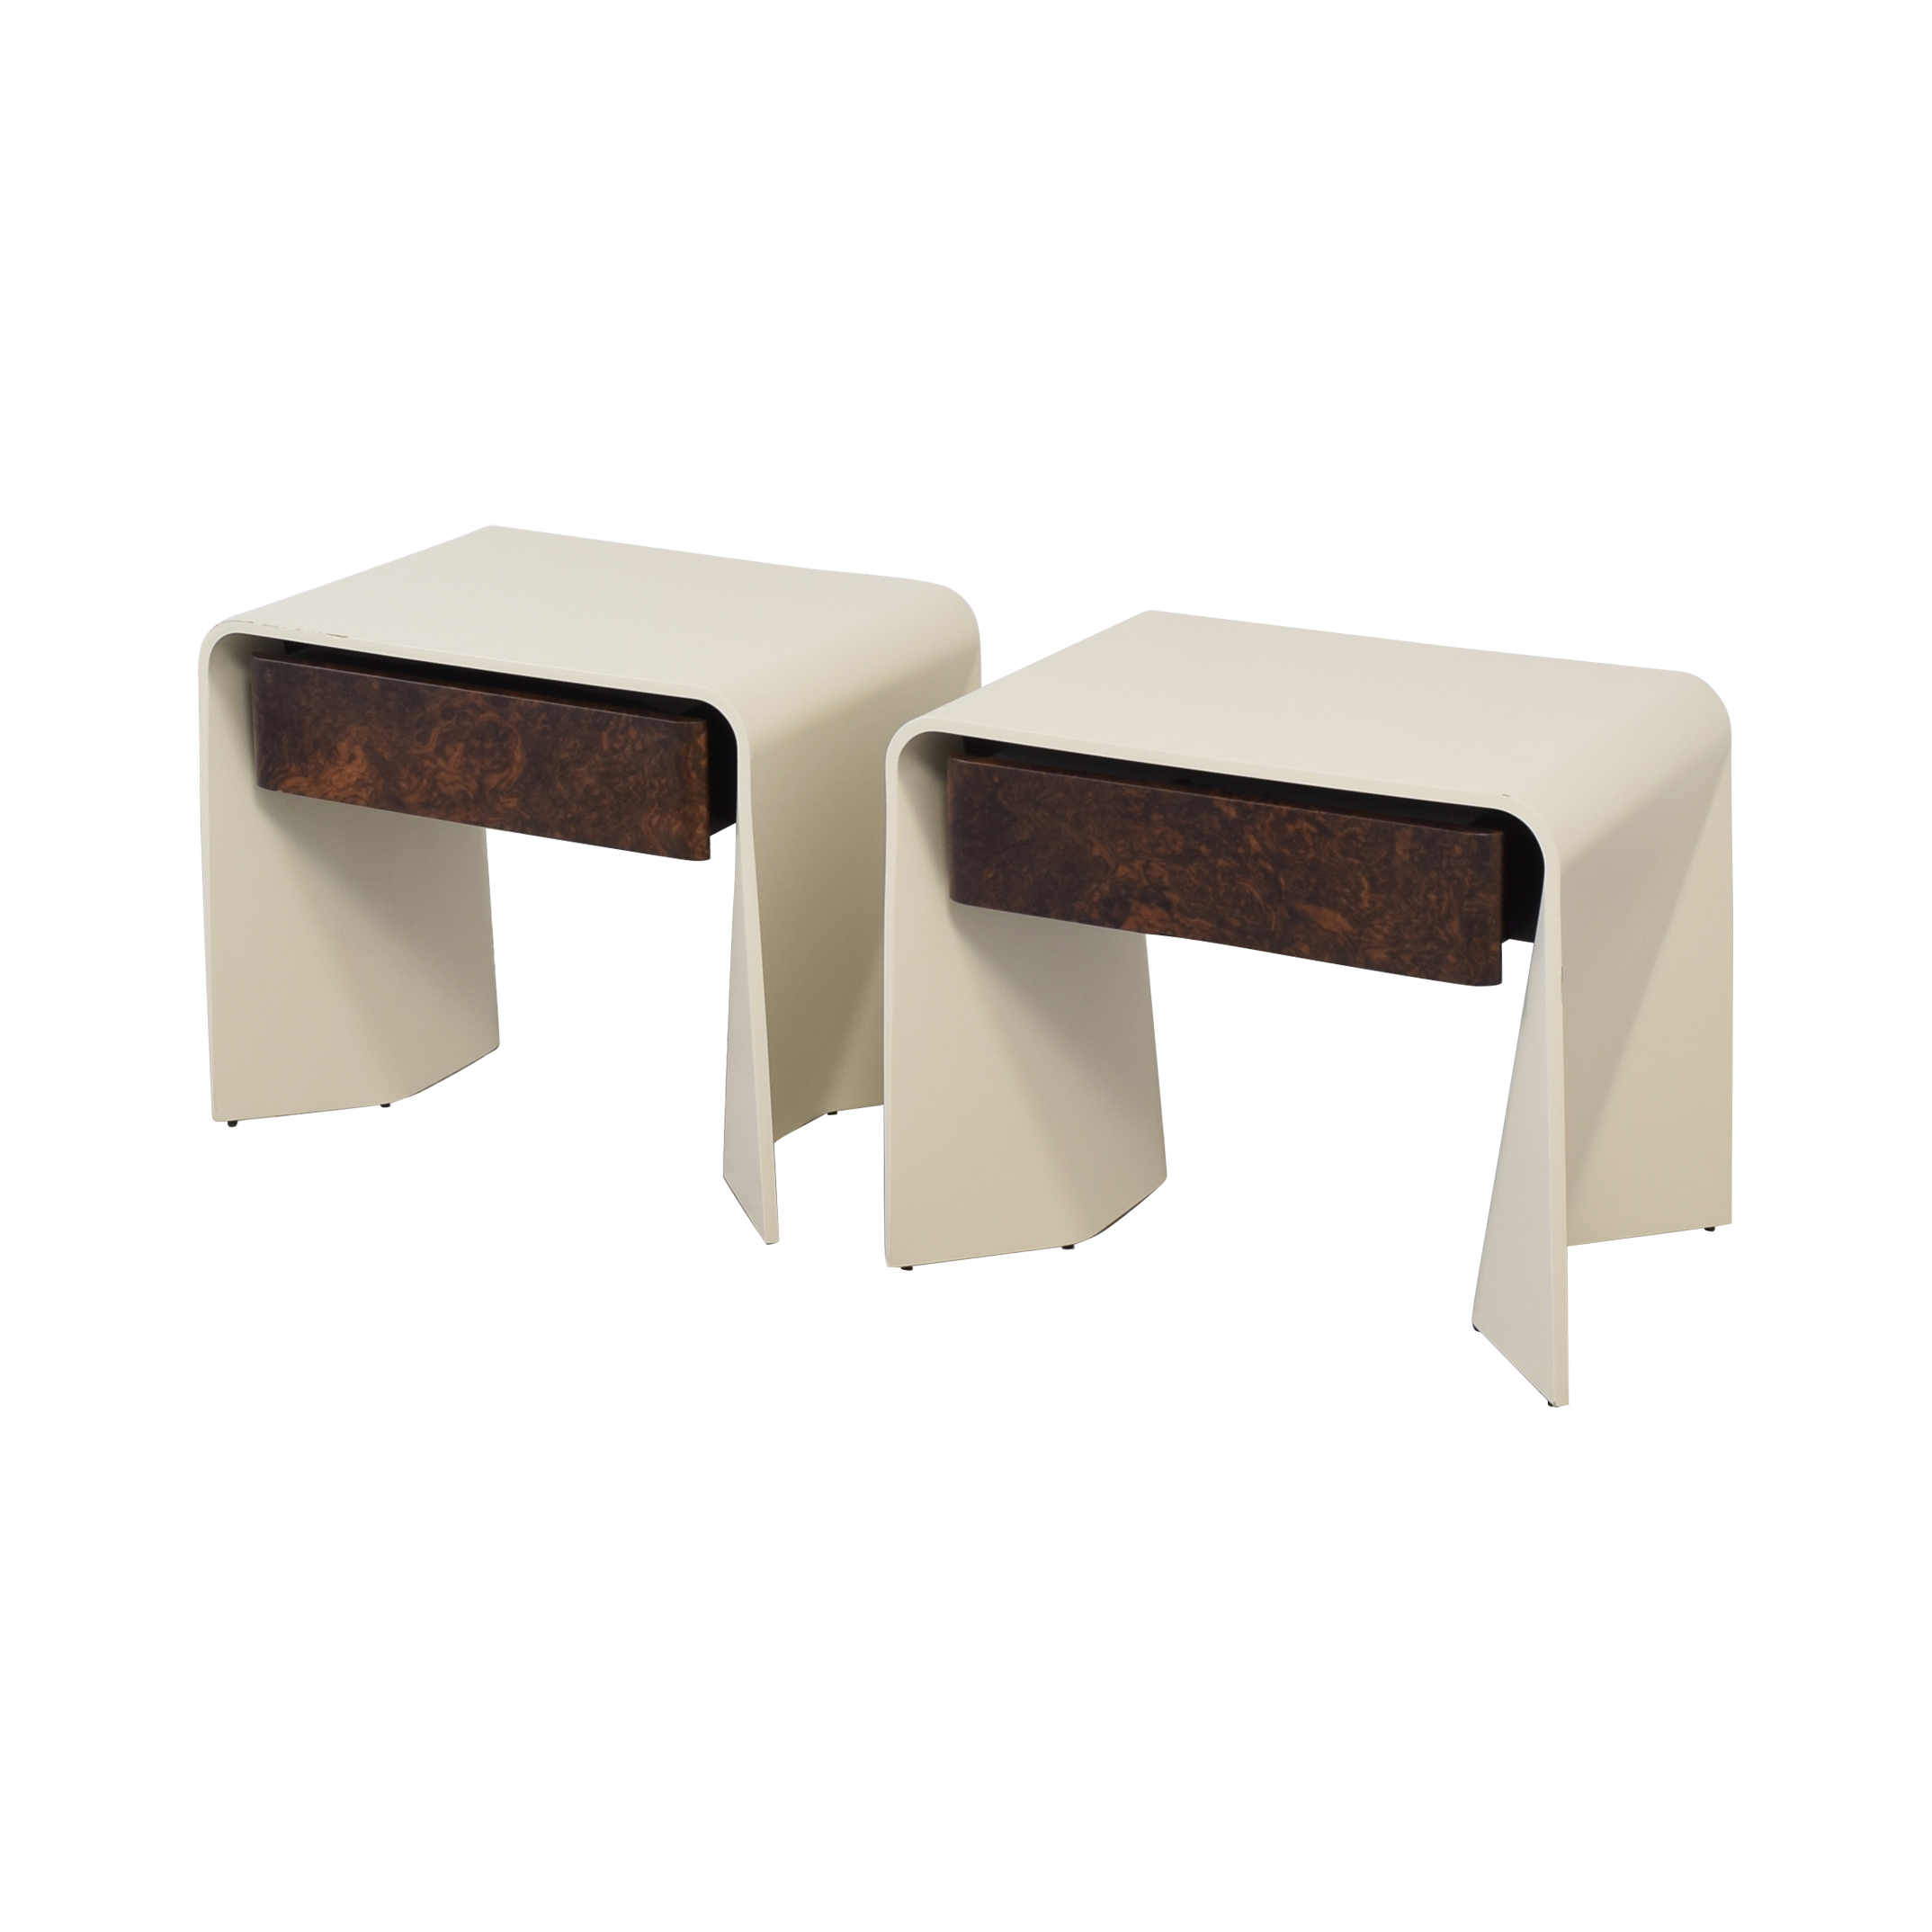 Donghia Donghia Tendu Leather End Tables nyc